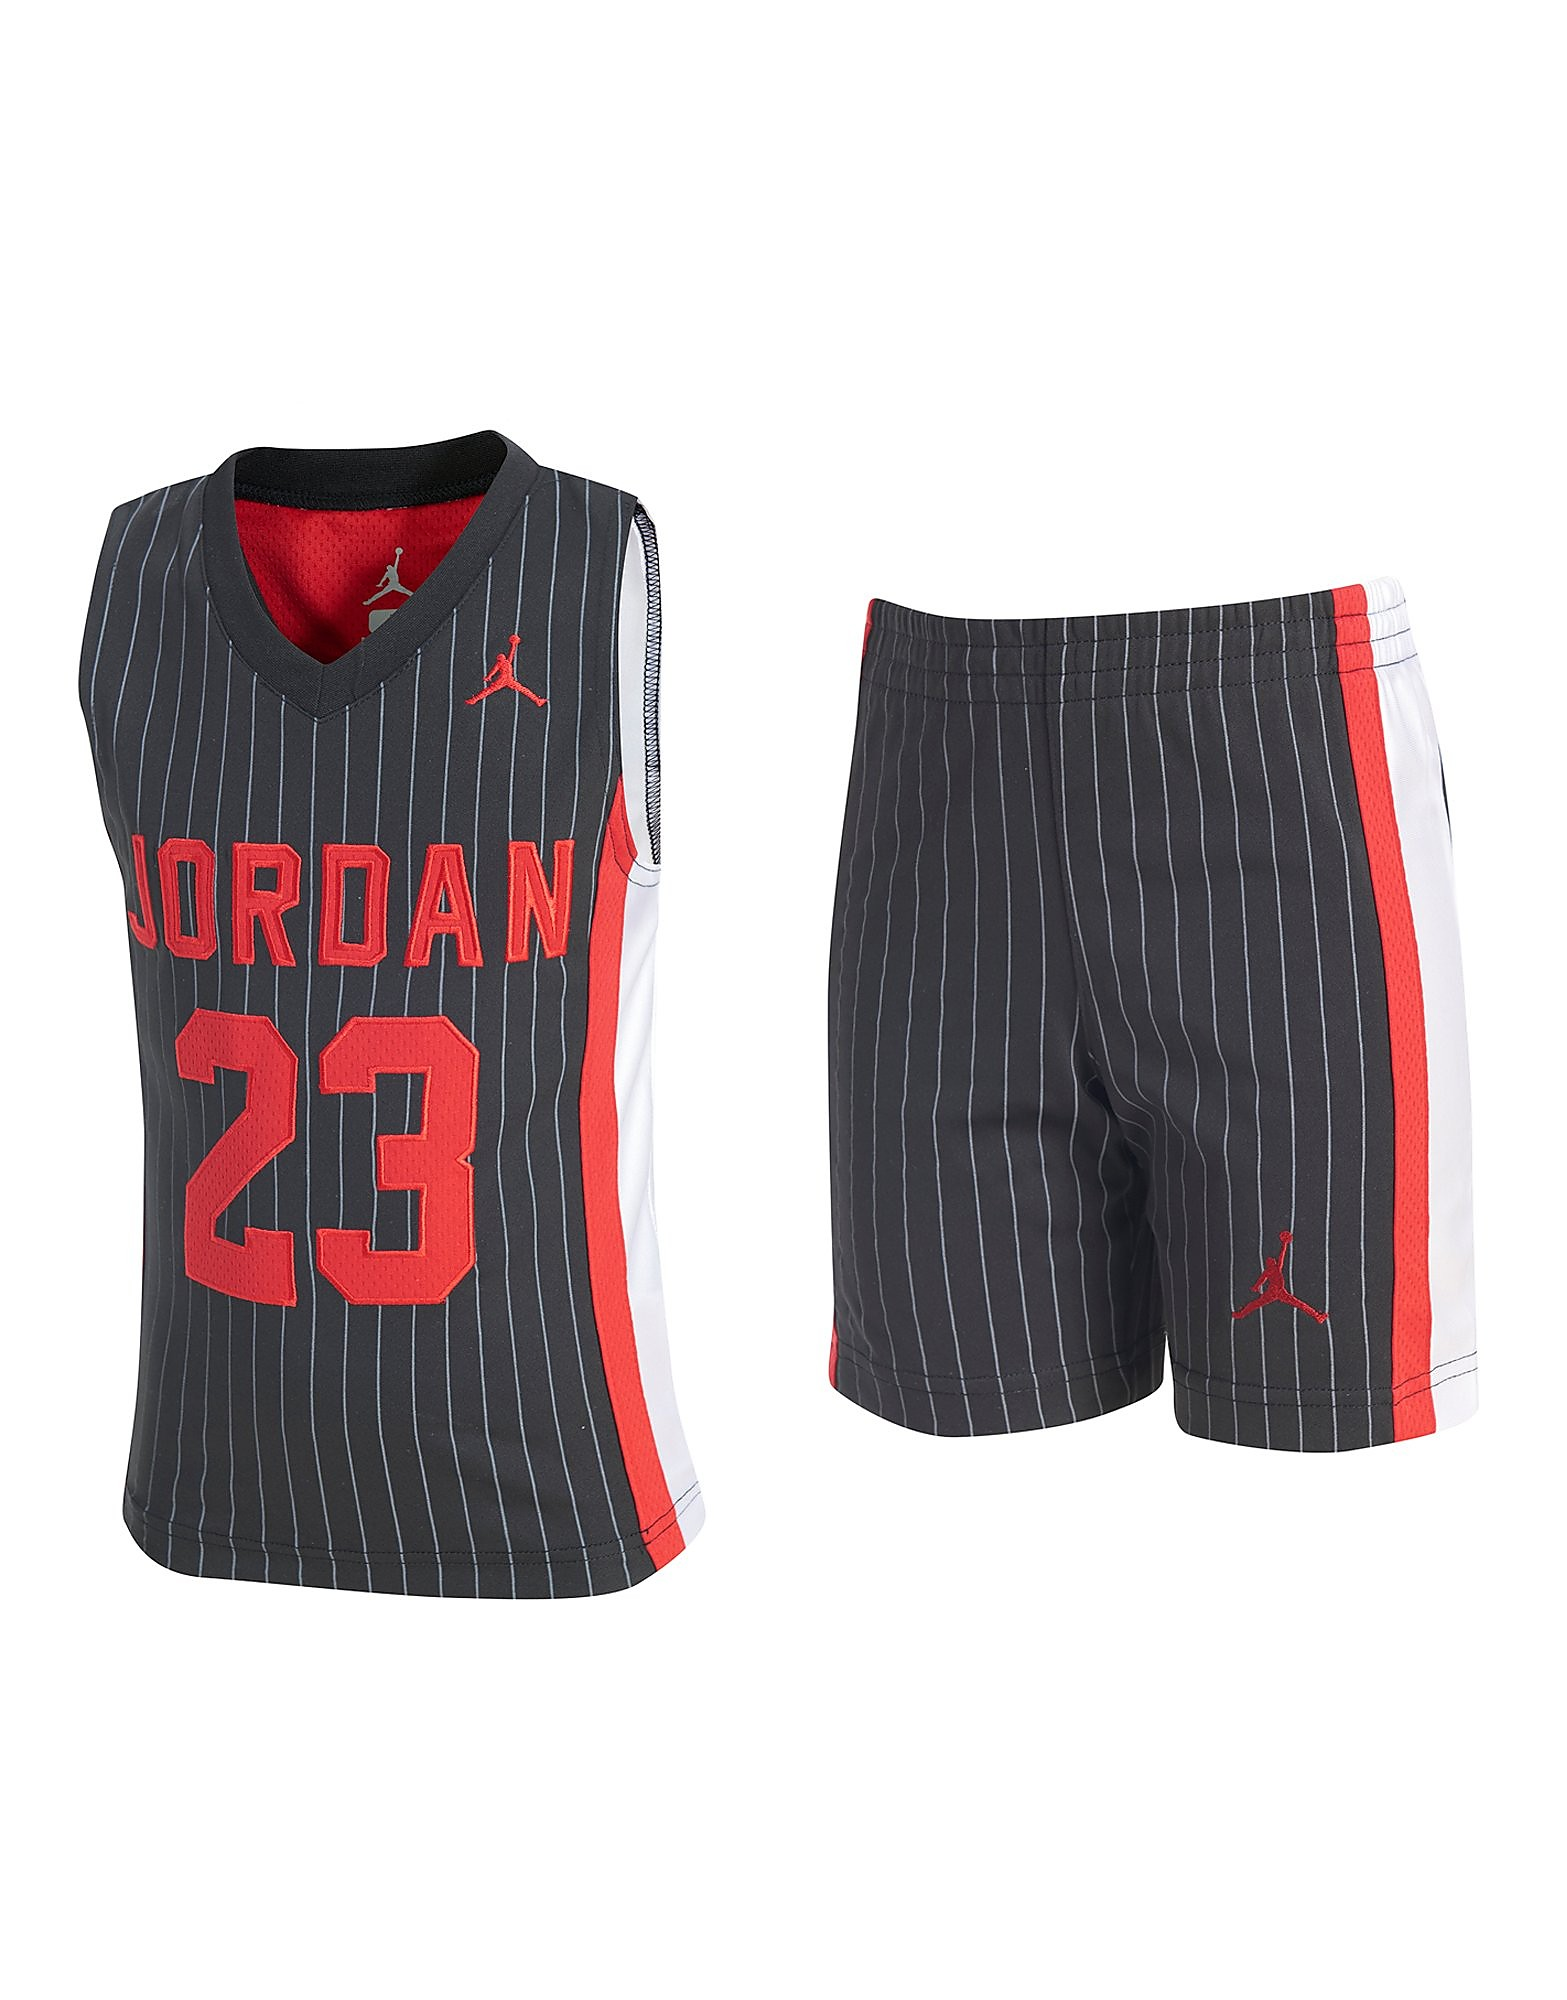 Jordan Retro Kit Set Children